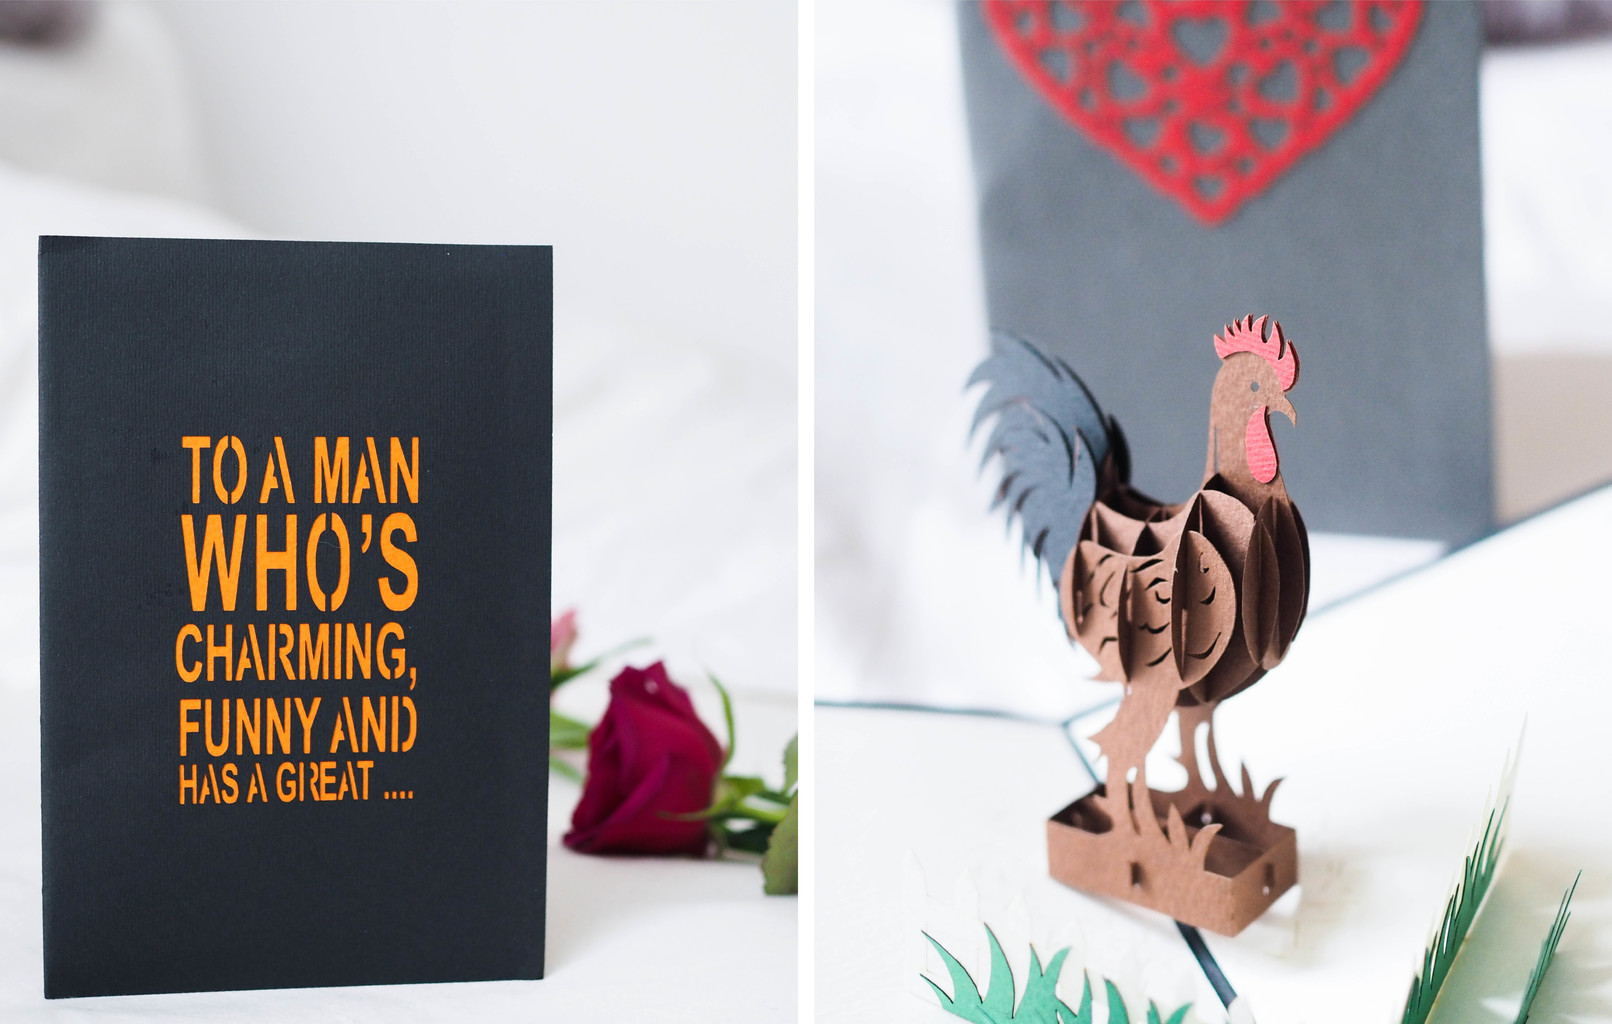 AN R-RATED GIFT GUIDE TO VALENTINES DAY